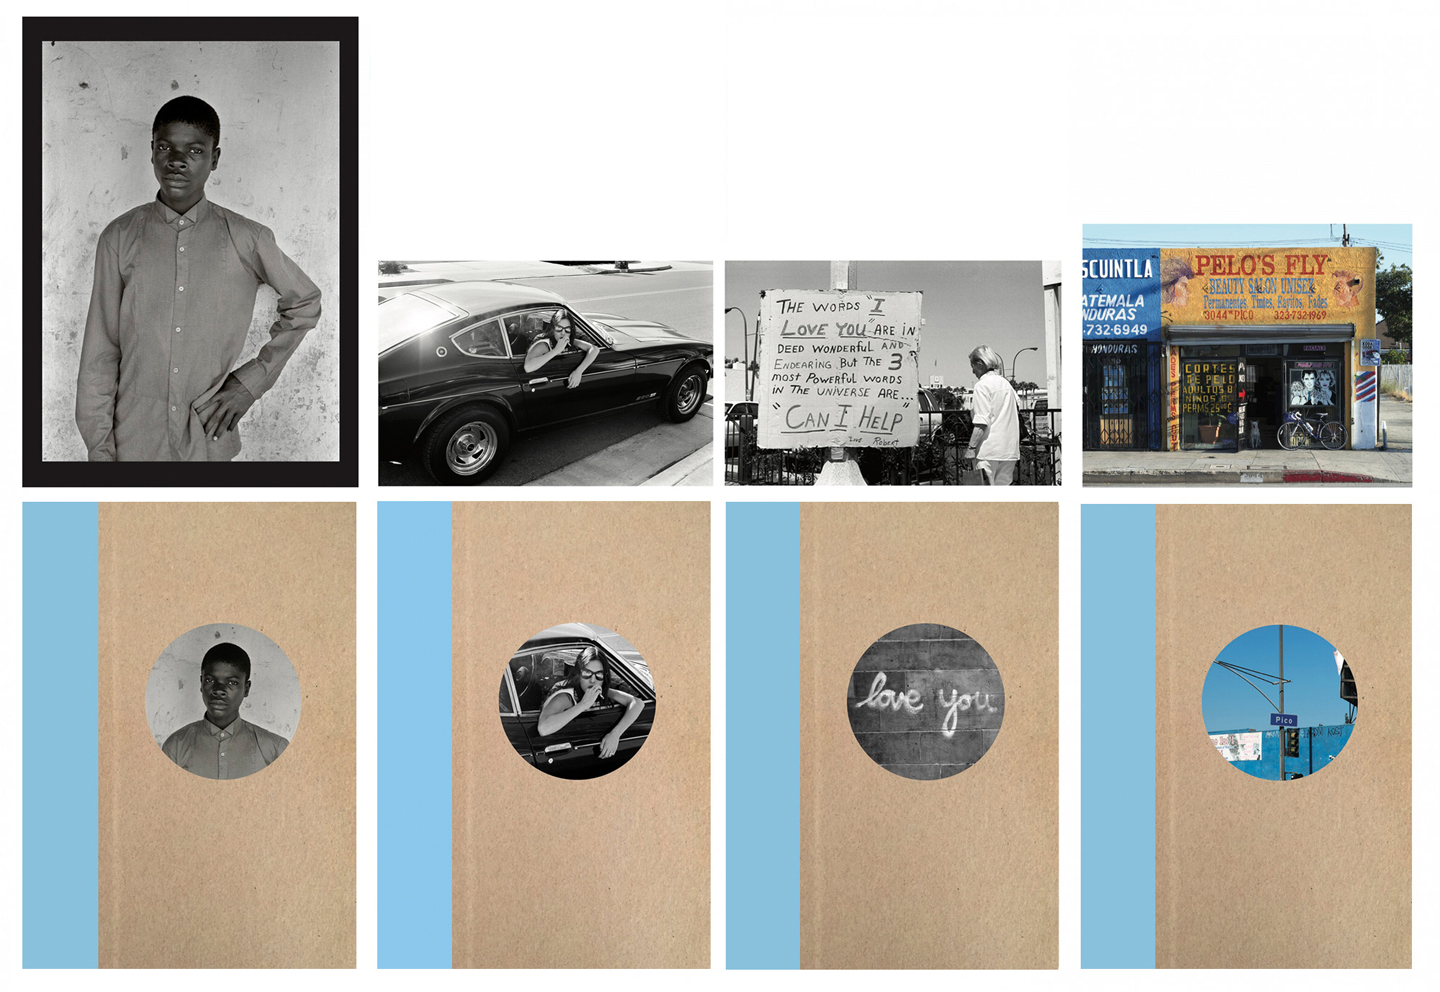 Nazraeli Press One Picture Book Two Series, Set 6: #21-24, Limited Edition(s) (with 4 Prints): Carrie Mae Weems: Africa: Gems and Jewels; Ed Templeton: Auto-Hypnosis; Deanna Templeton: Love You; John Humble: Pico Boulevard